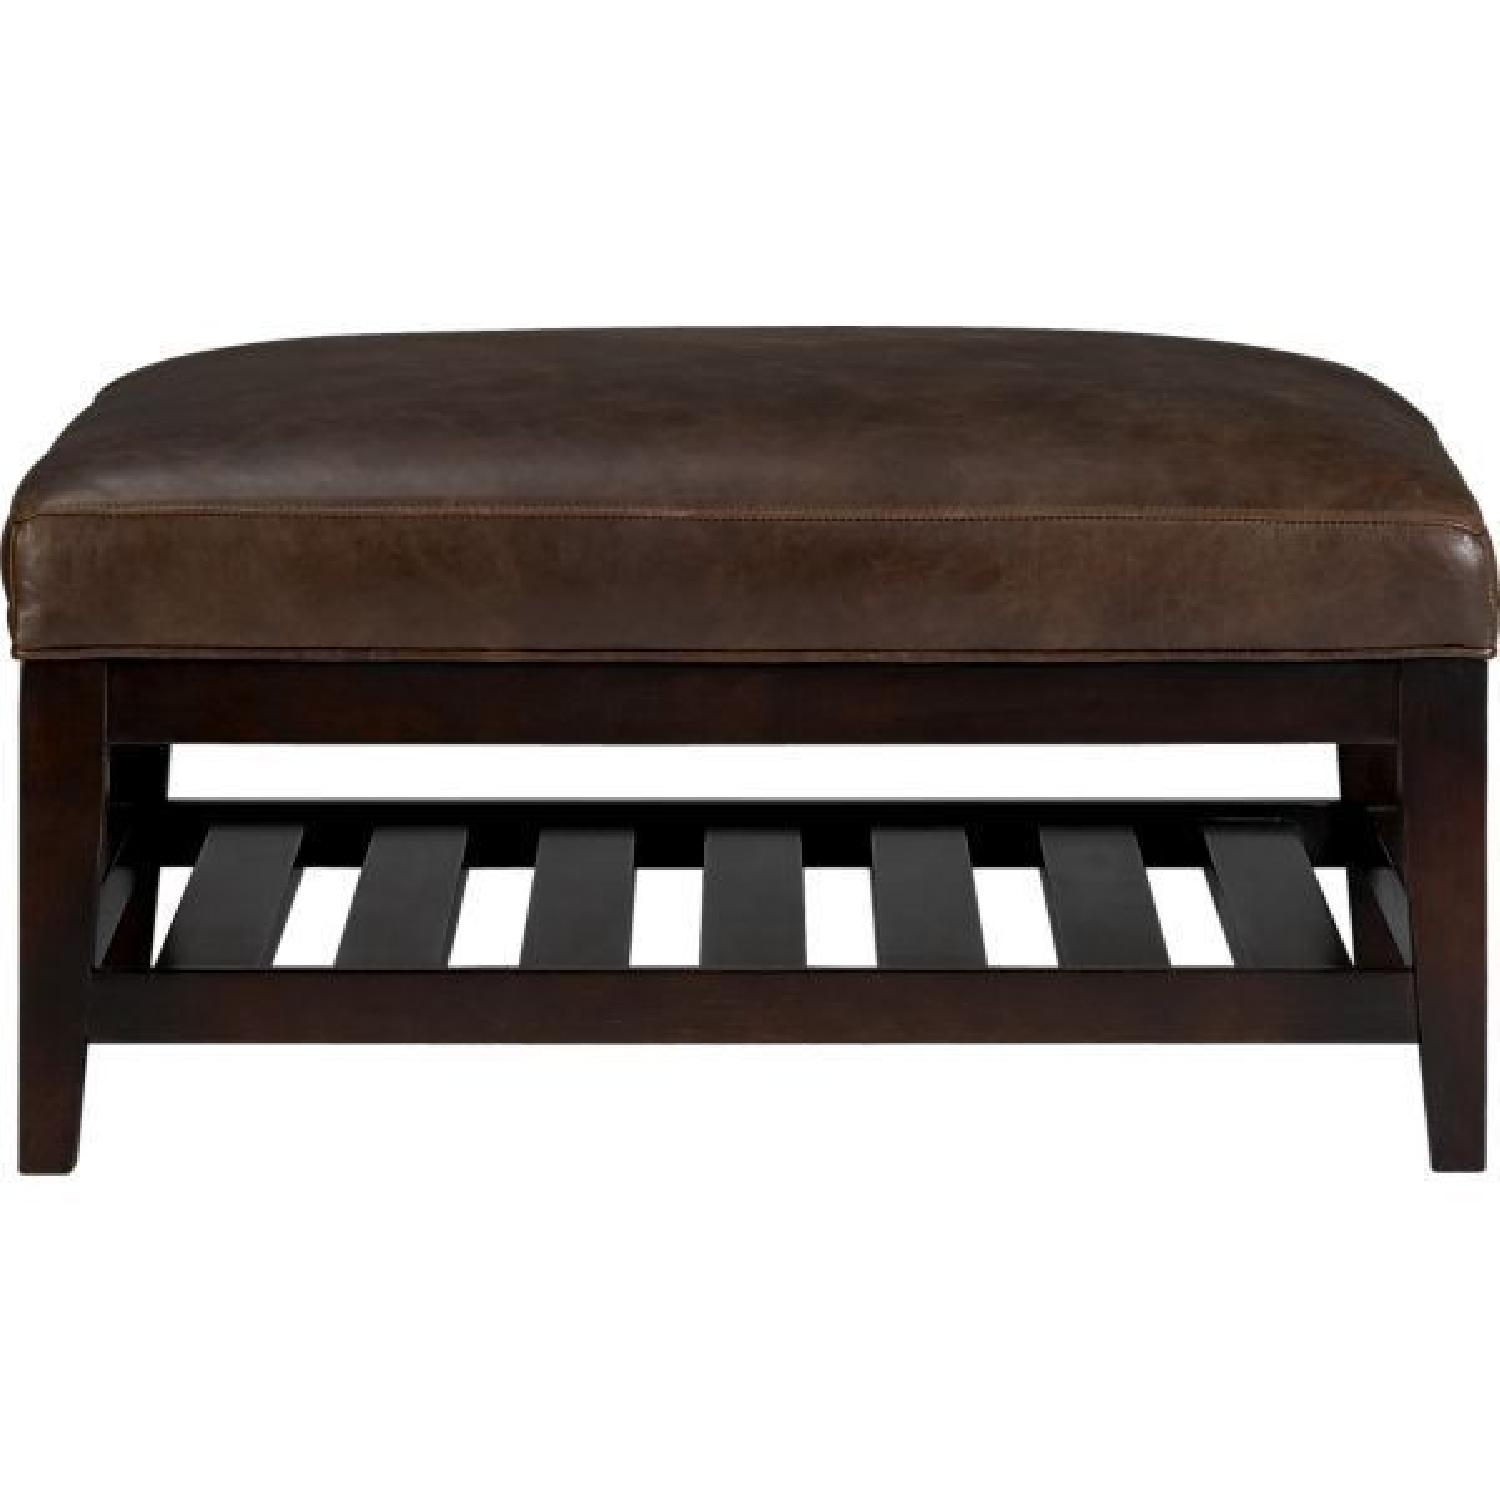 Crate & Barrel Brody Leather & Wood Coffee Table/Ottoman